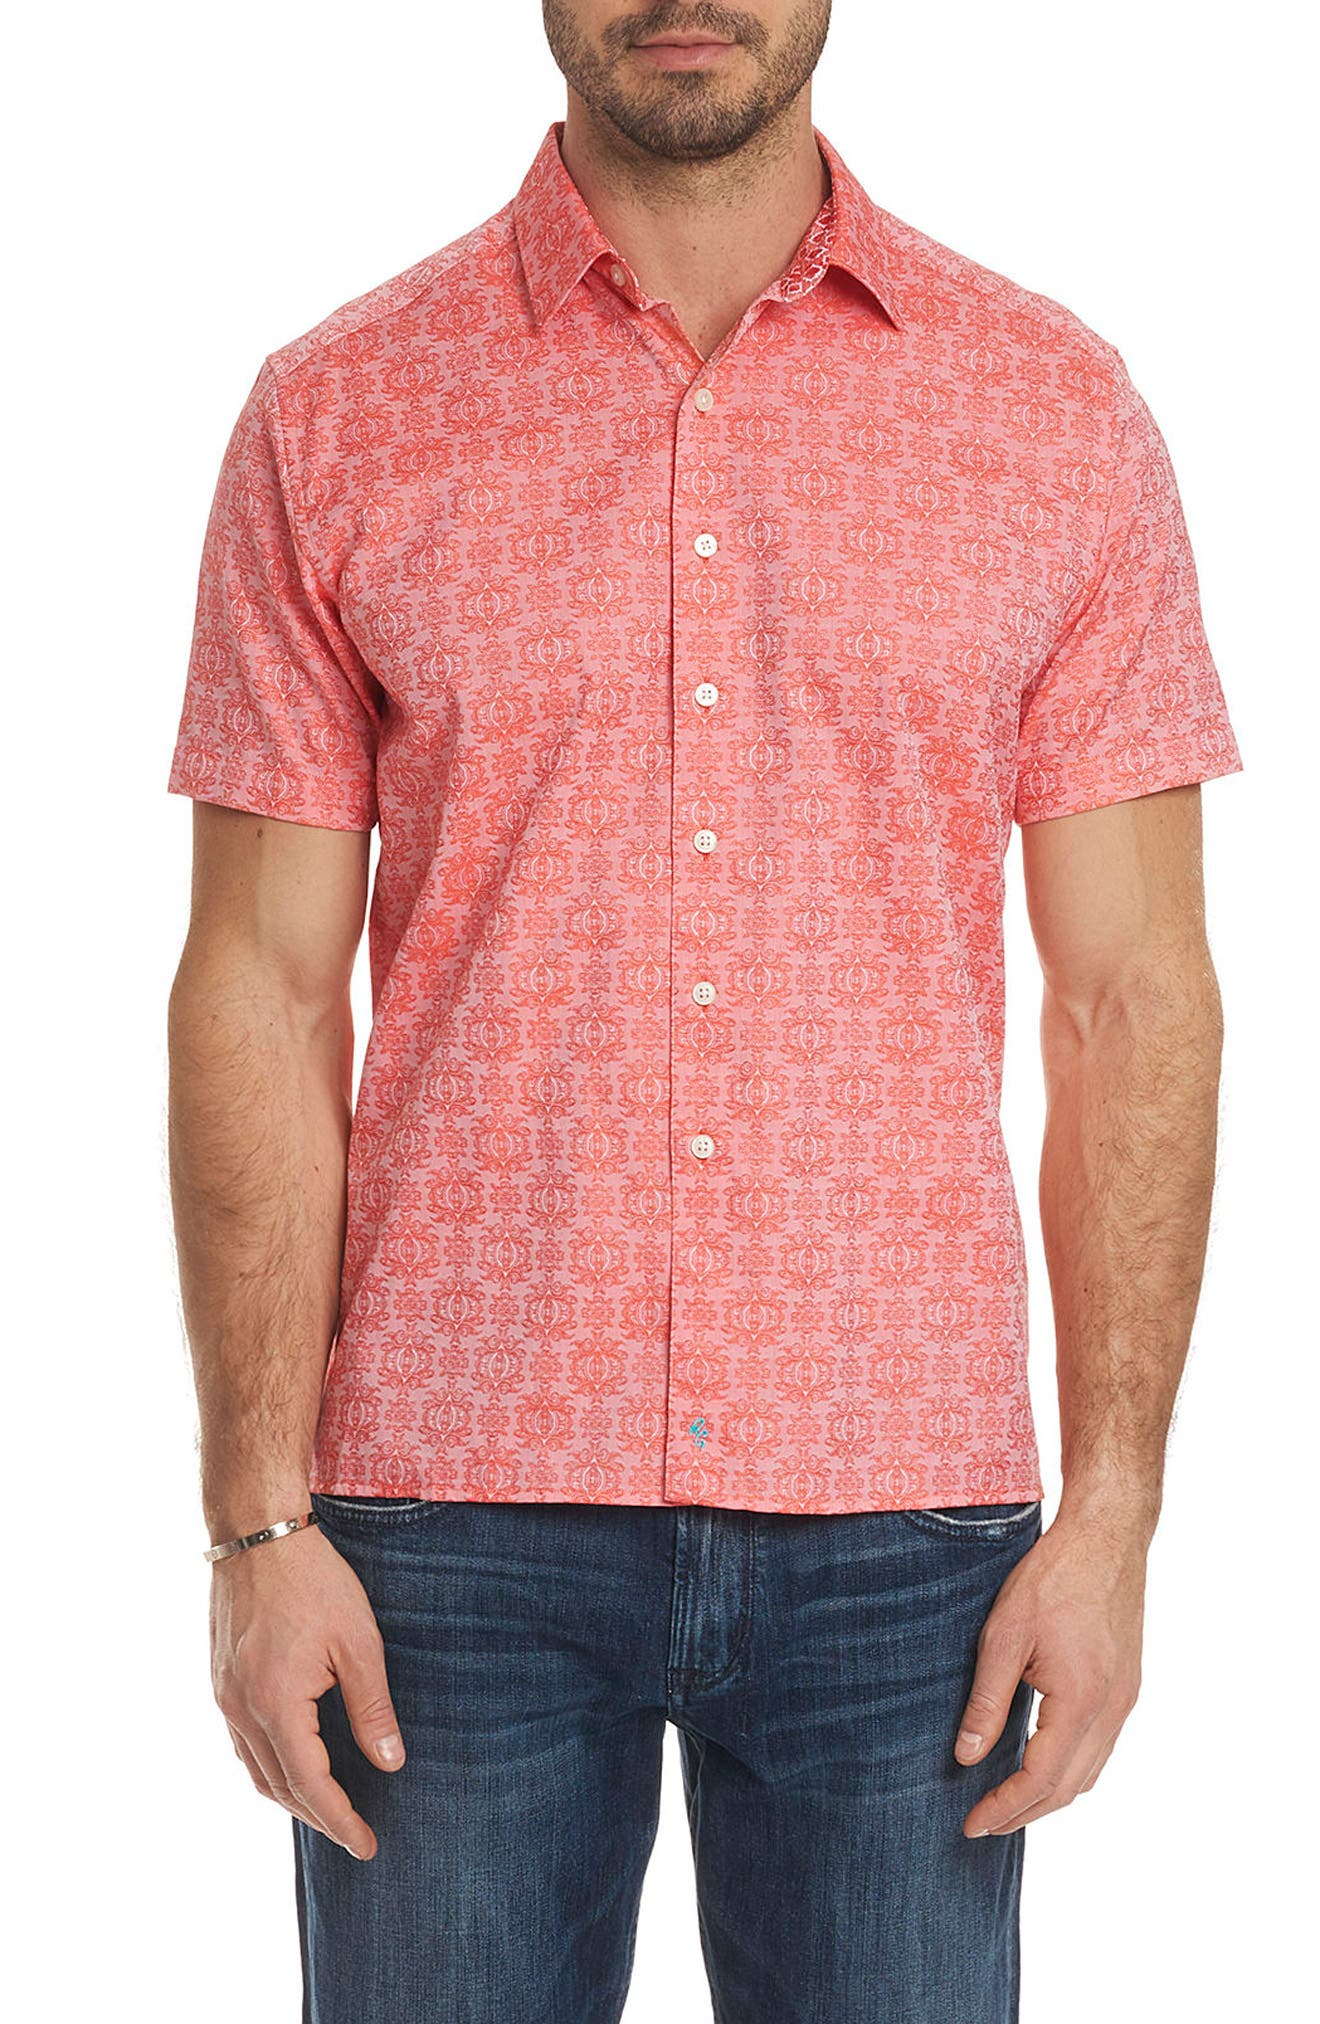 Cullen Squared Regular Fit Short Sleeve Sport Shirt,                         Main,                         color, Coral